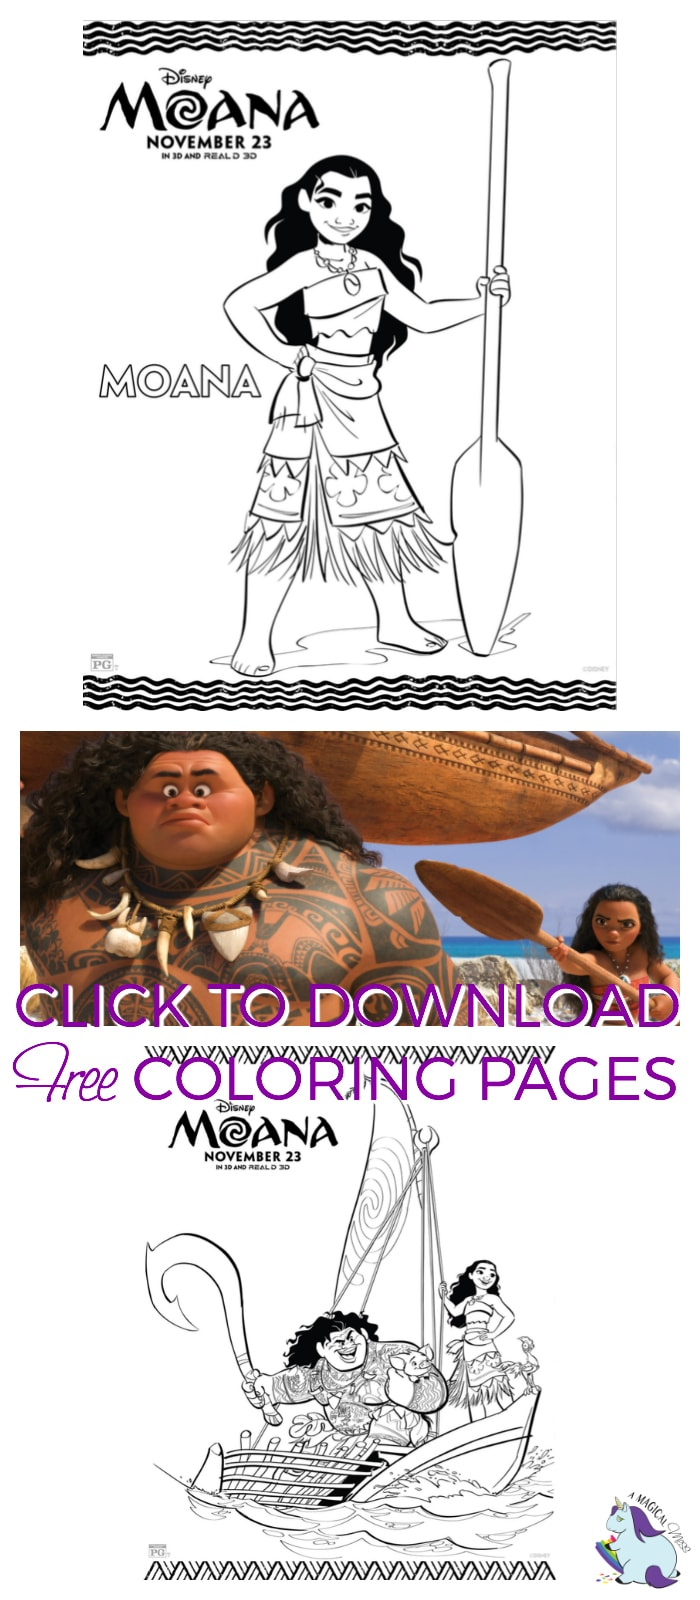 Free Disney Coloring Pages - Full Moana Coloring Packet!